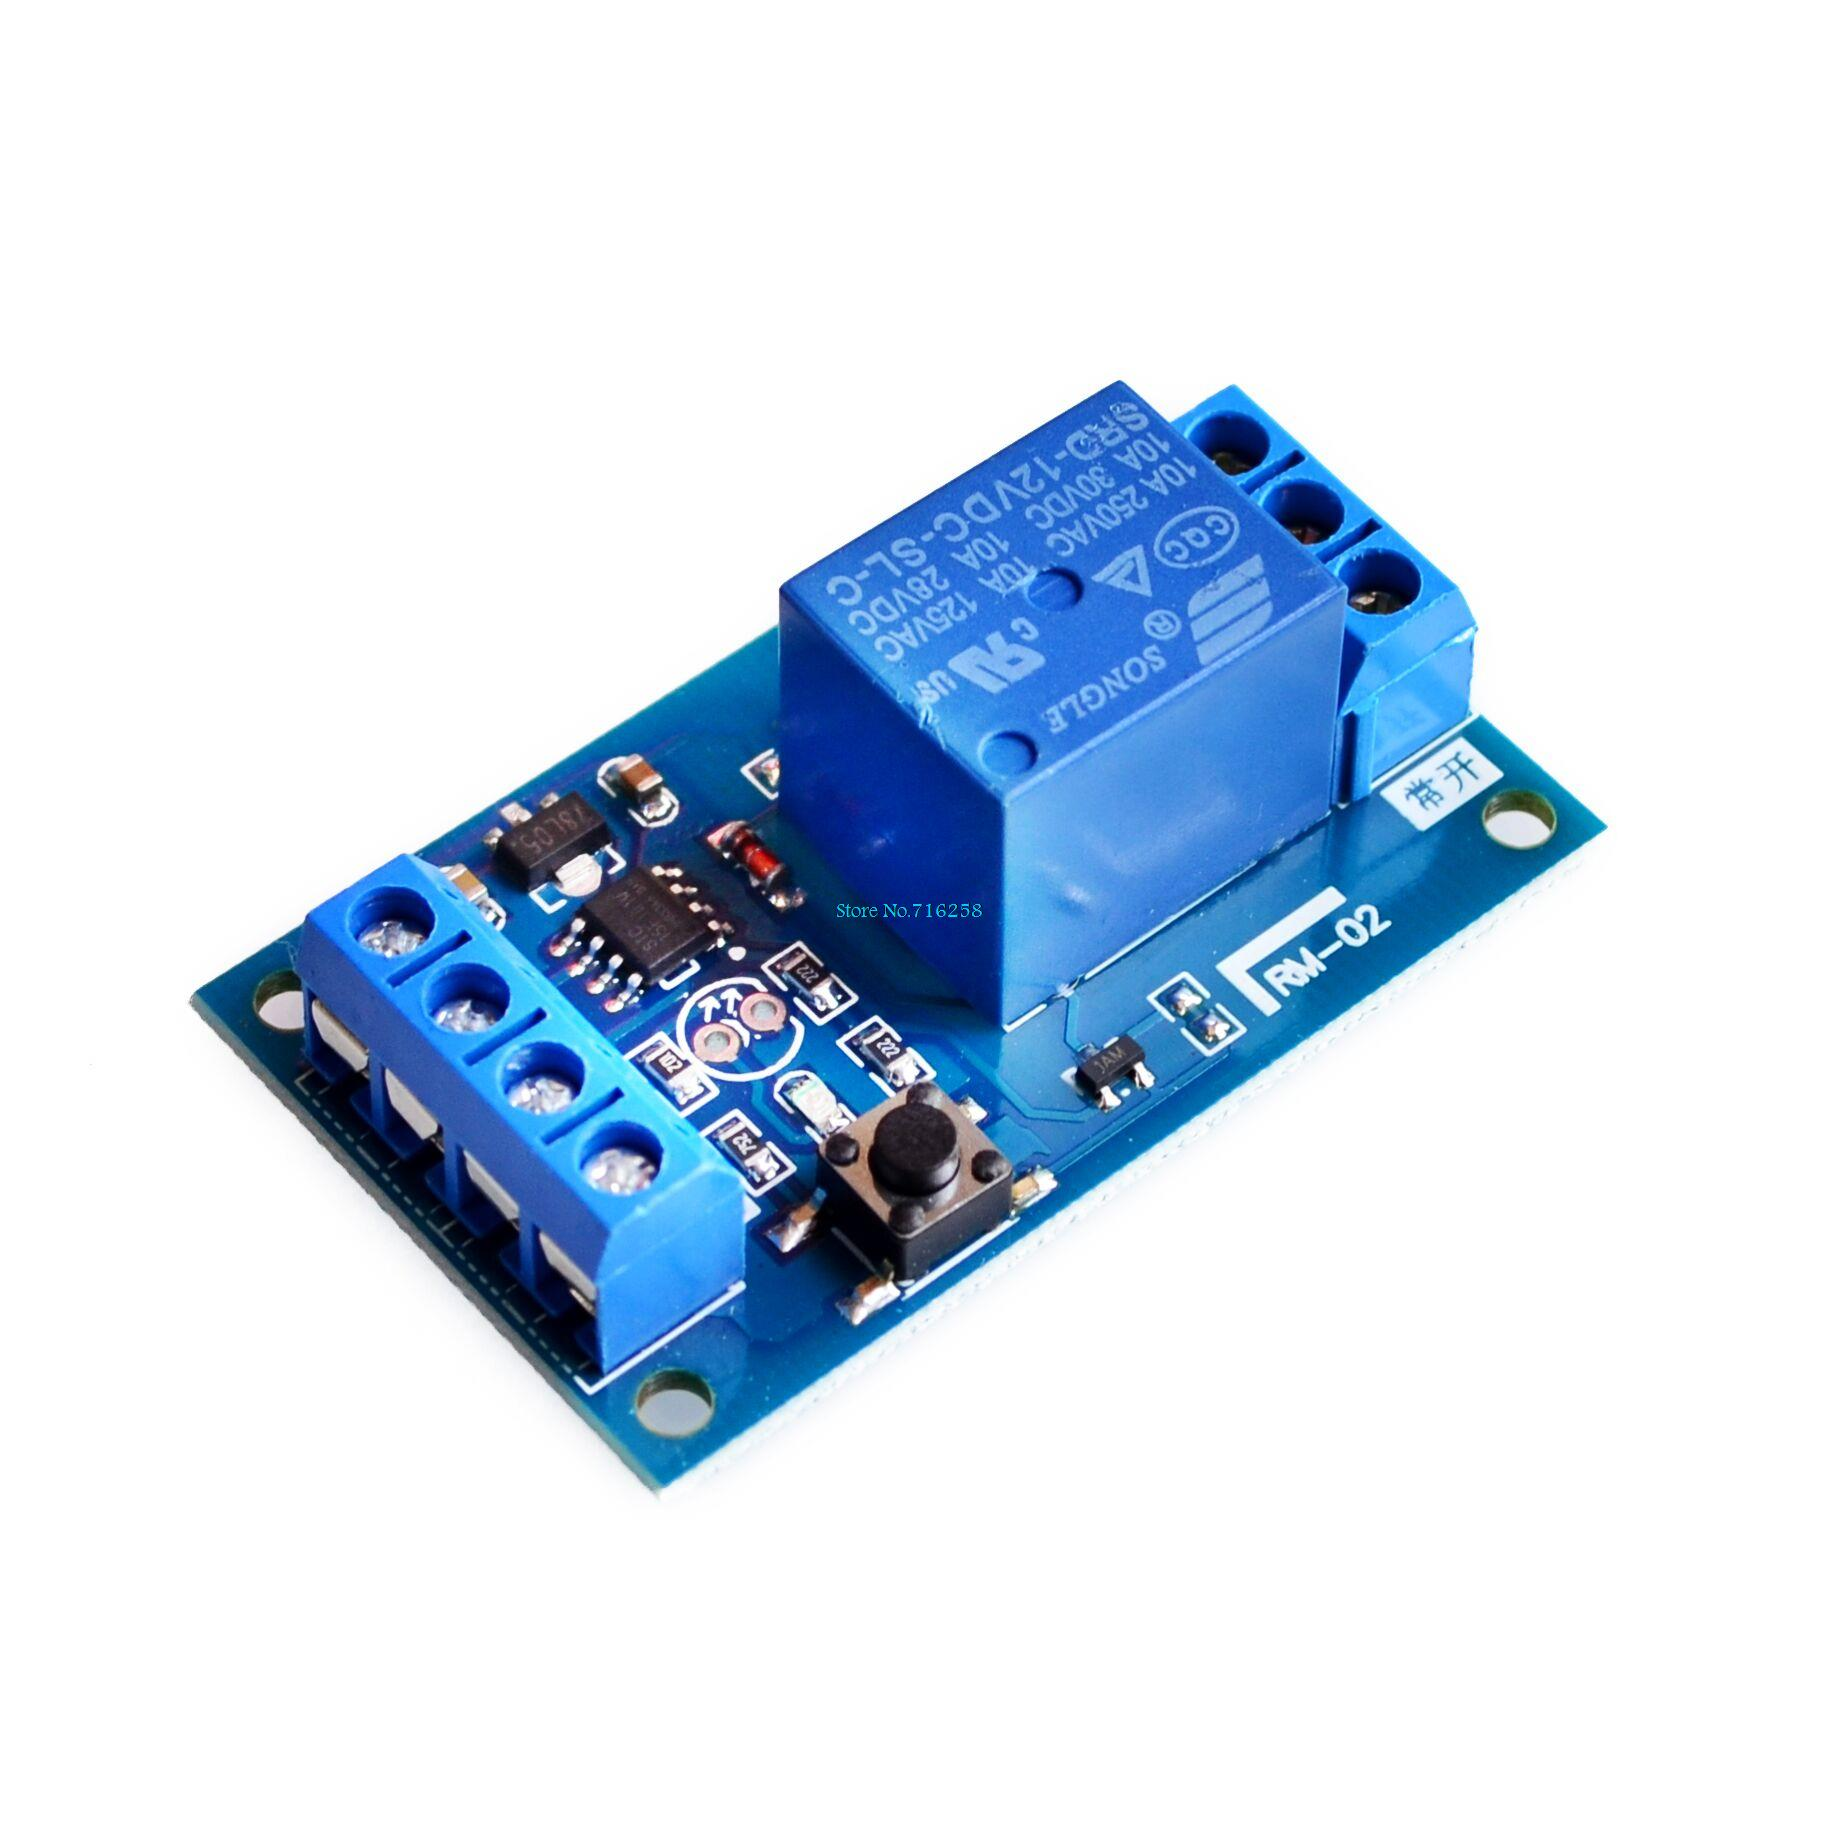 12V Bond Bistable Relay Module Car Modification Switch One Key Start and Stop the Self-Locking12V Bond Bistable Relay Module Car Modification Switch One Key Start and Stop the Self-Locking